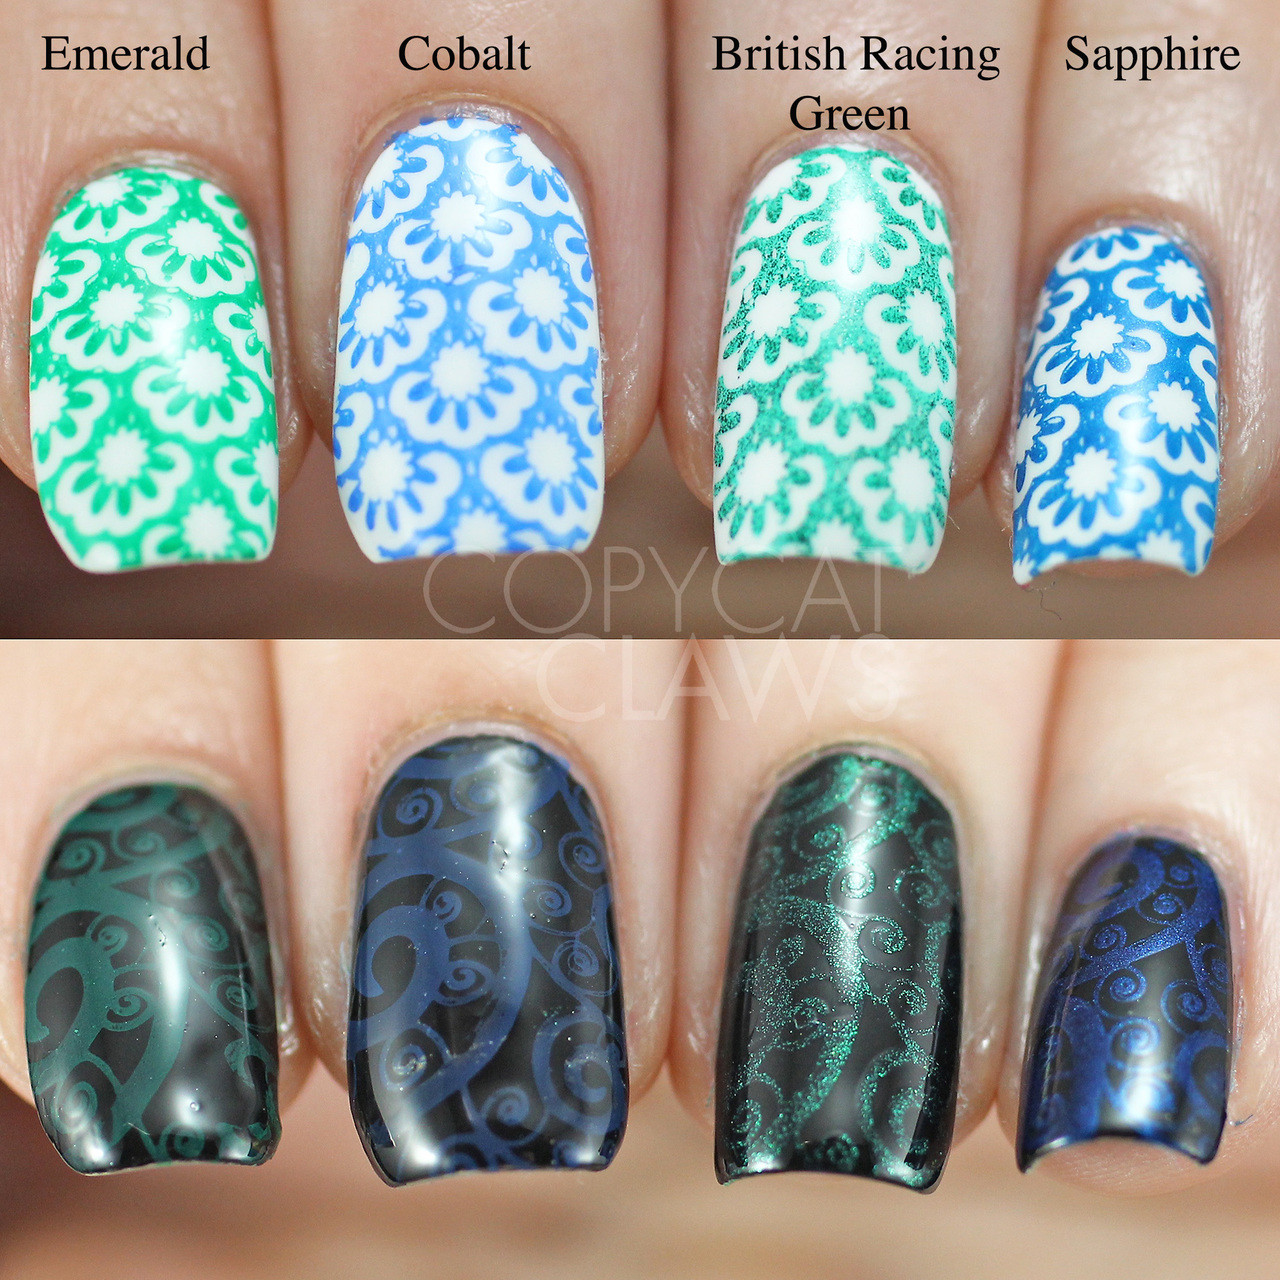 Sapphire {Stamping} By Girly Bits Cosmetics